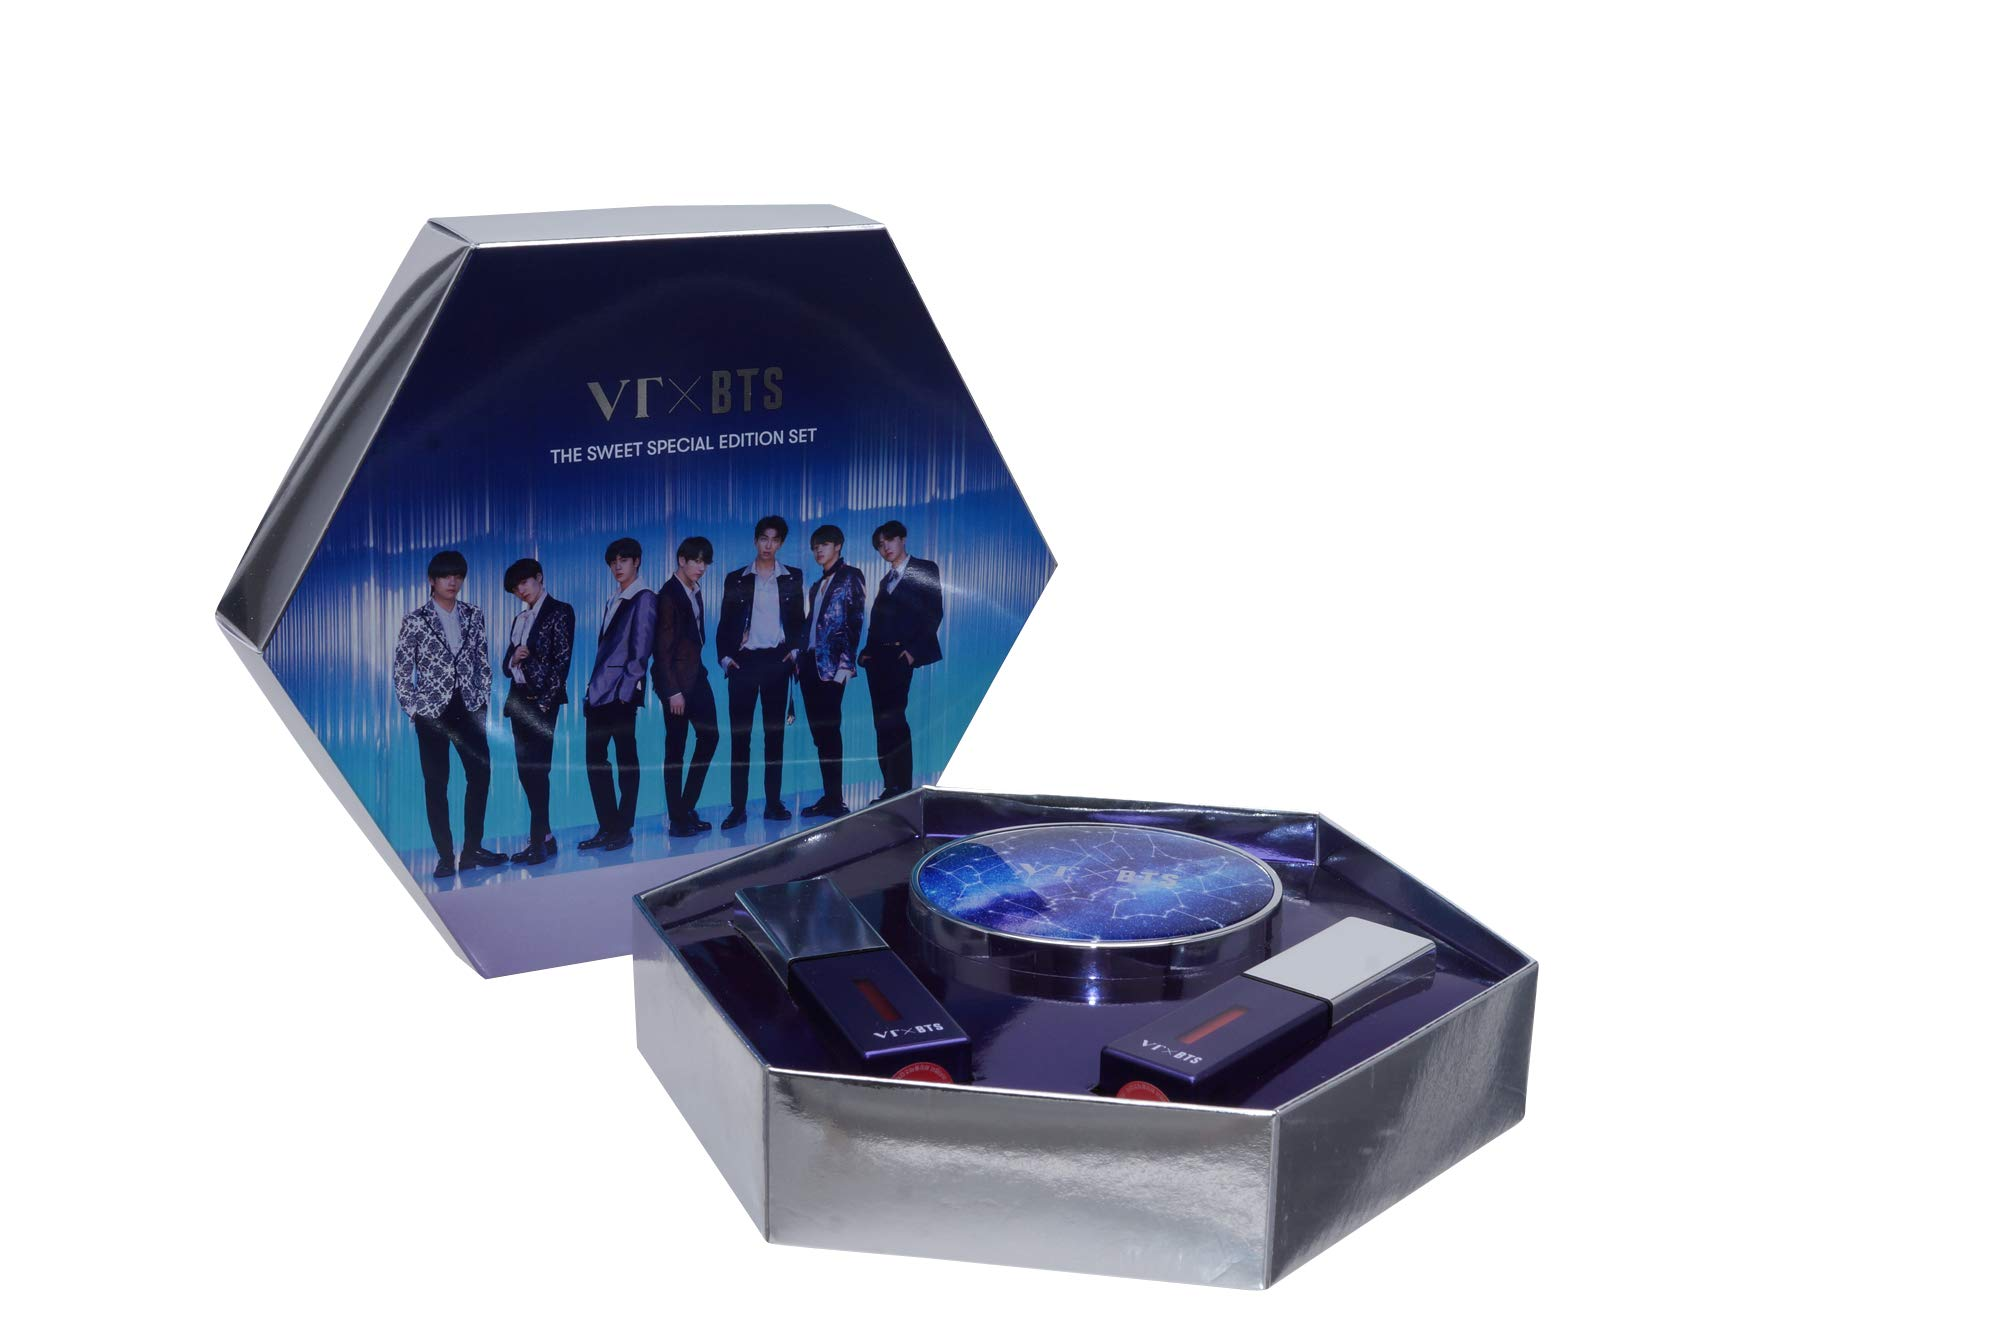 BTS Merchandise Foundation Cushion - The Sweet Special Edition Set, 1 Foundation in a Bangtan Boys Zodiac Sign Case + 2 Liptints by TV